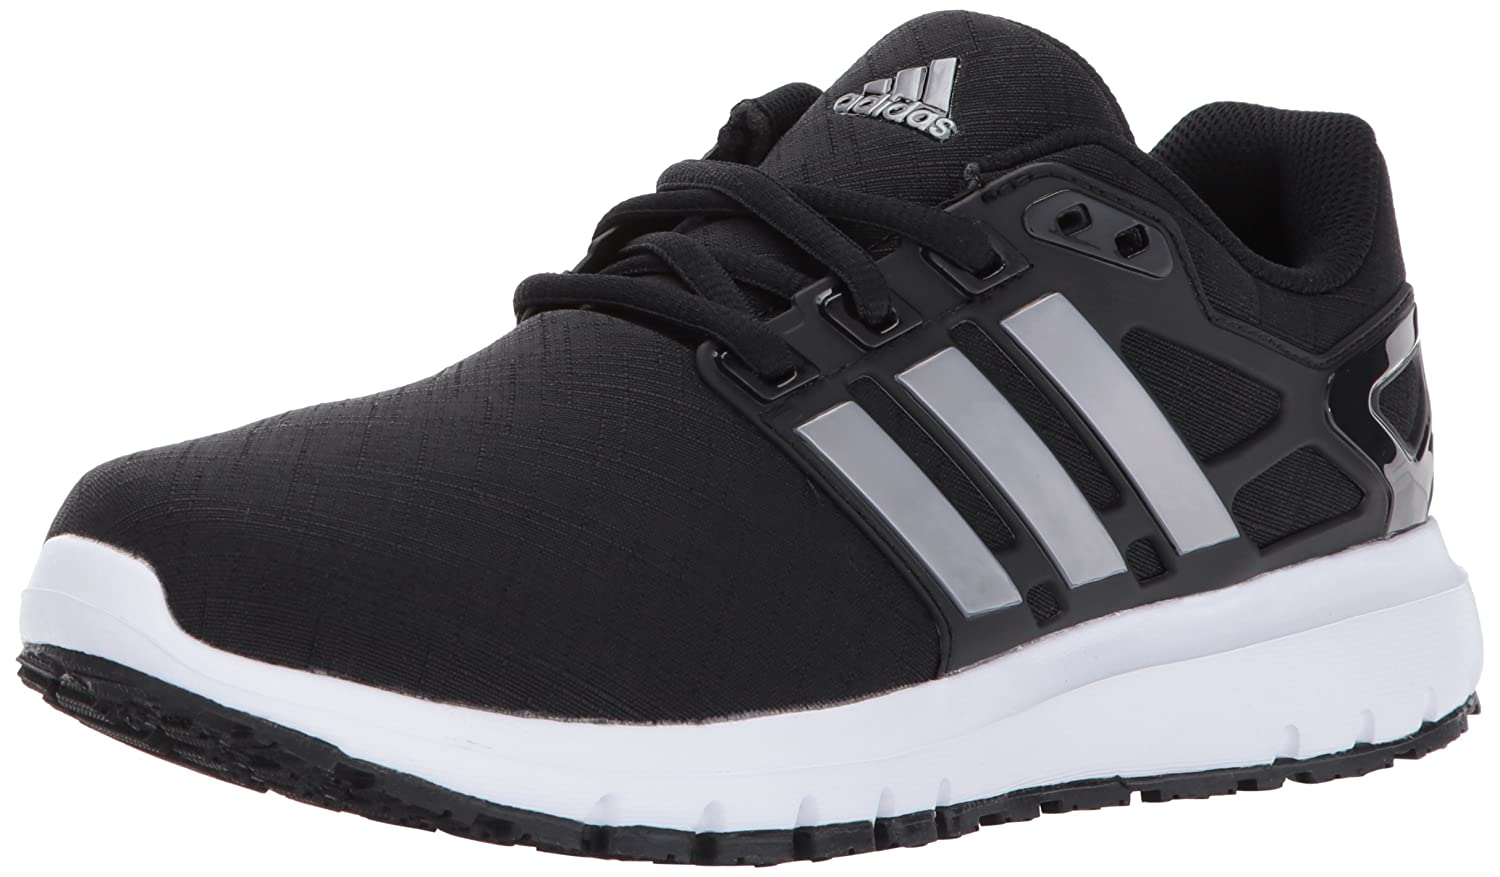 adidas Women's Energy Cloud W Running Shoe B01N45BPRA 7 B(M) US|Black/Tech Silver/Tech Silver